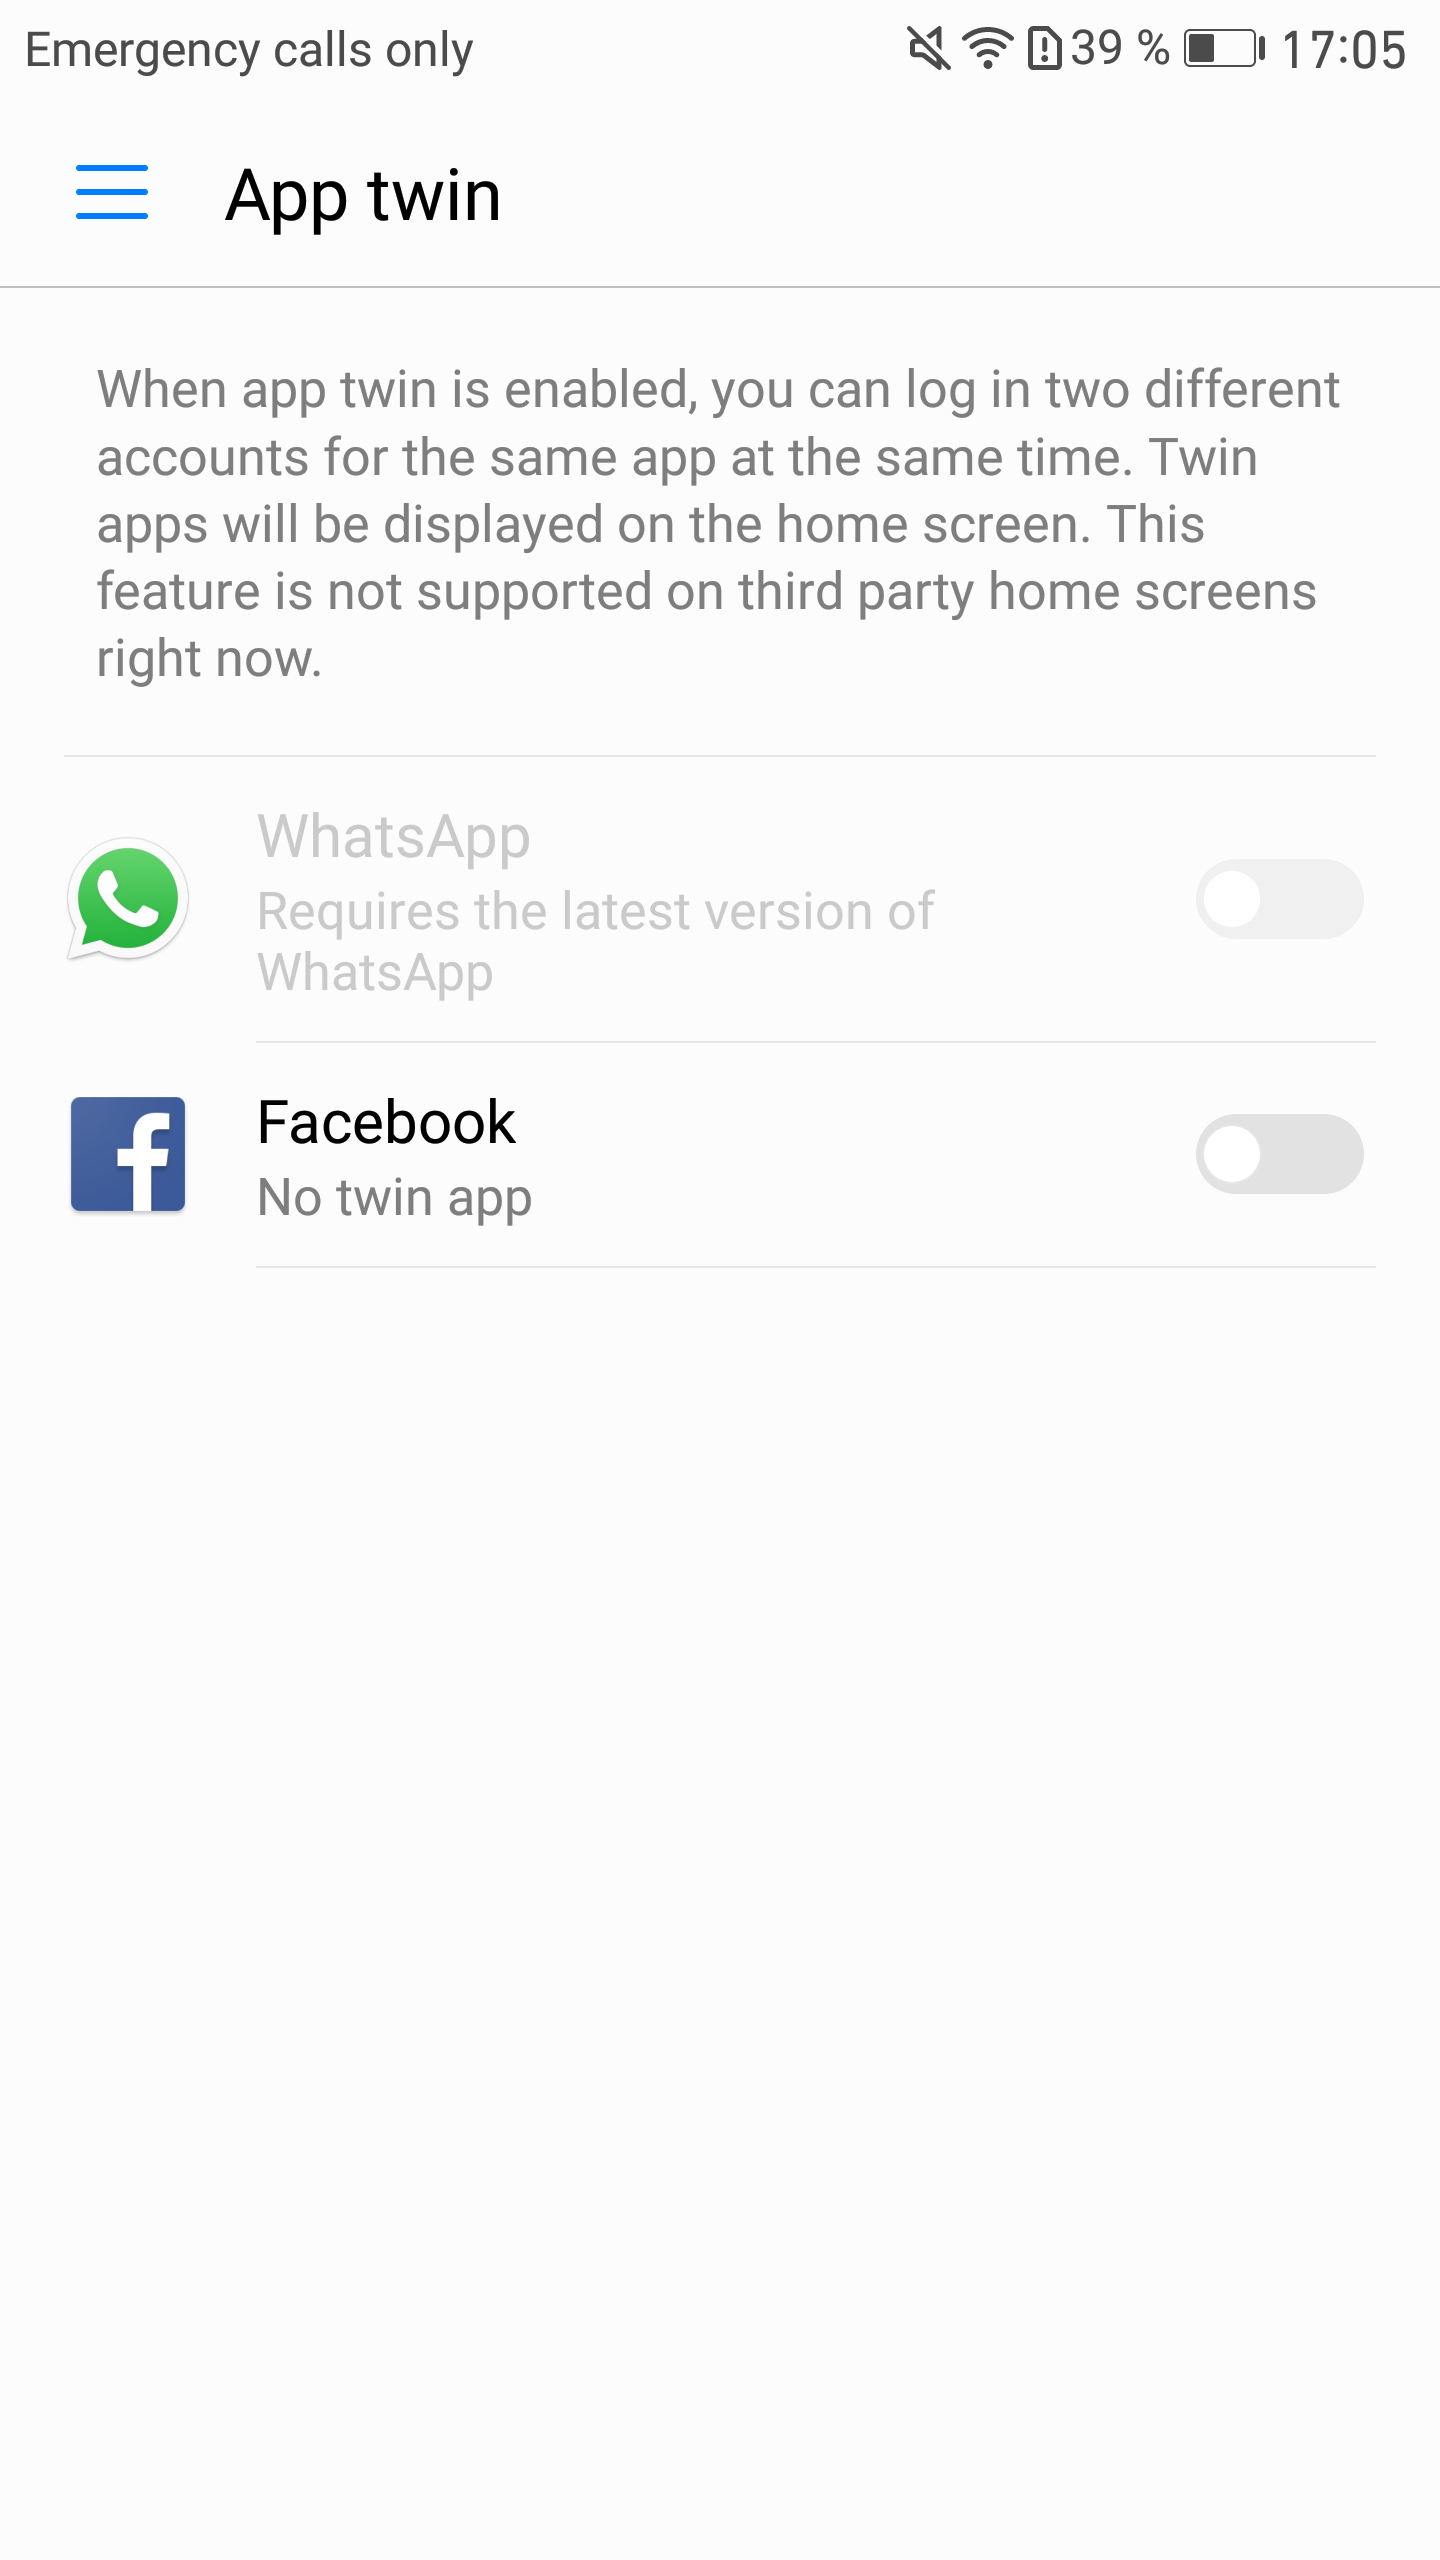 huawei-mate-9-pro-apps-settings-12